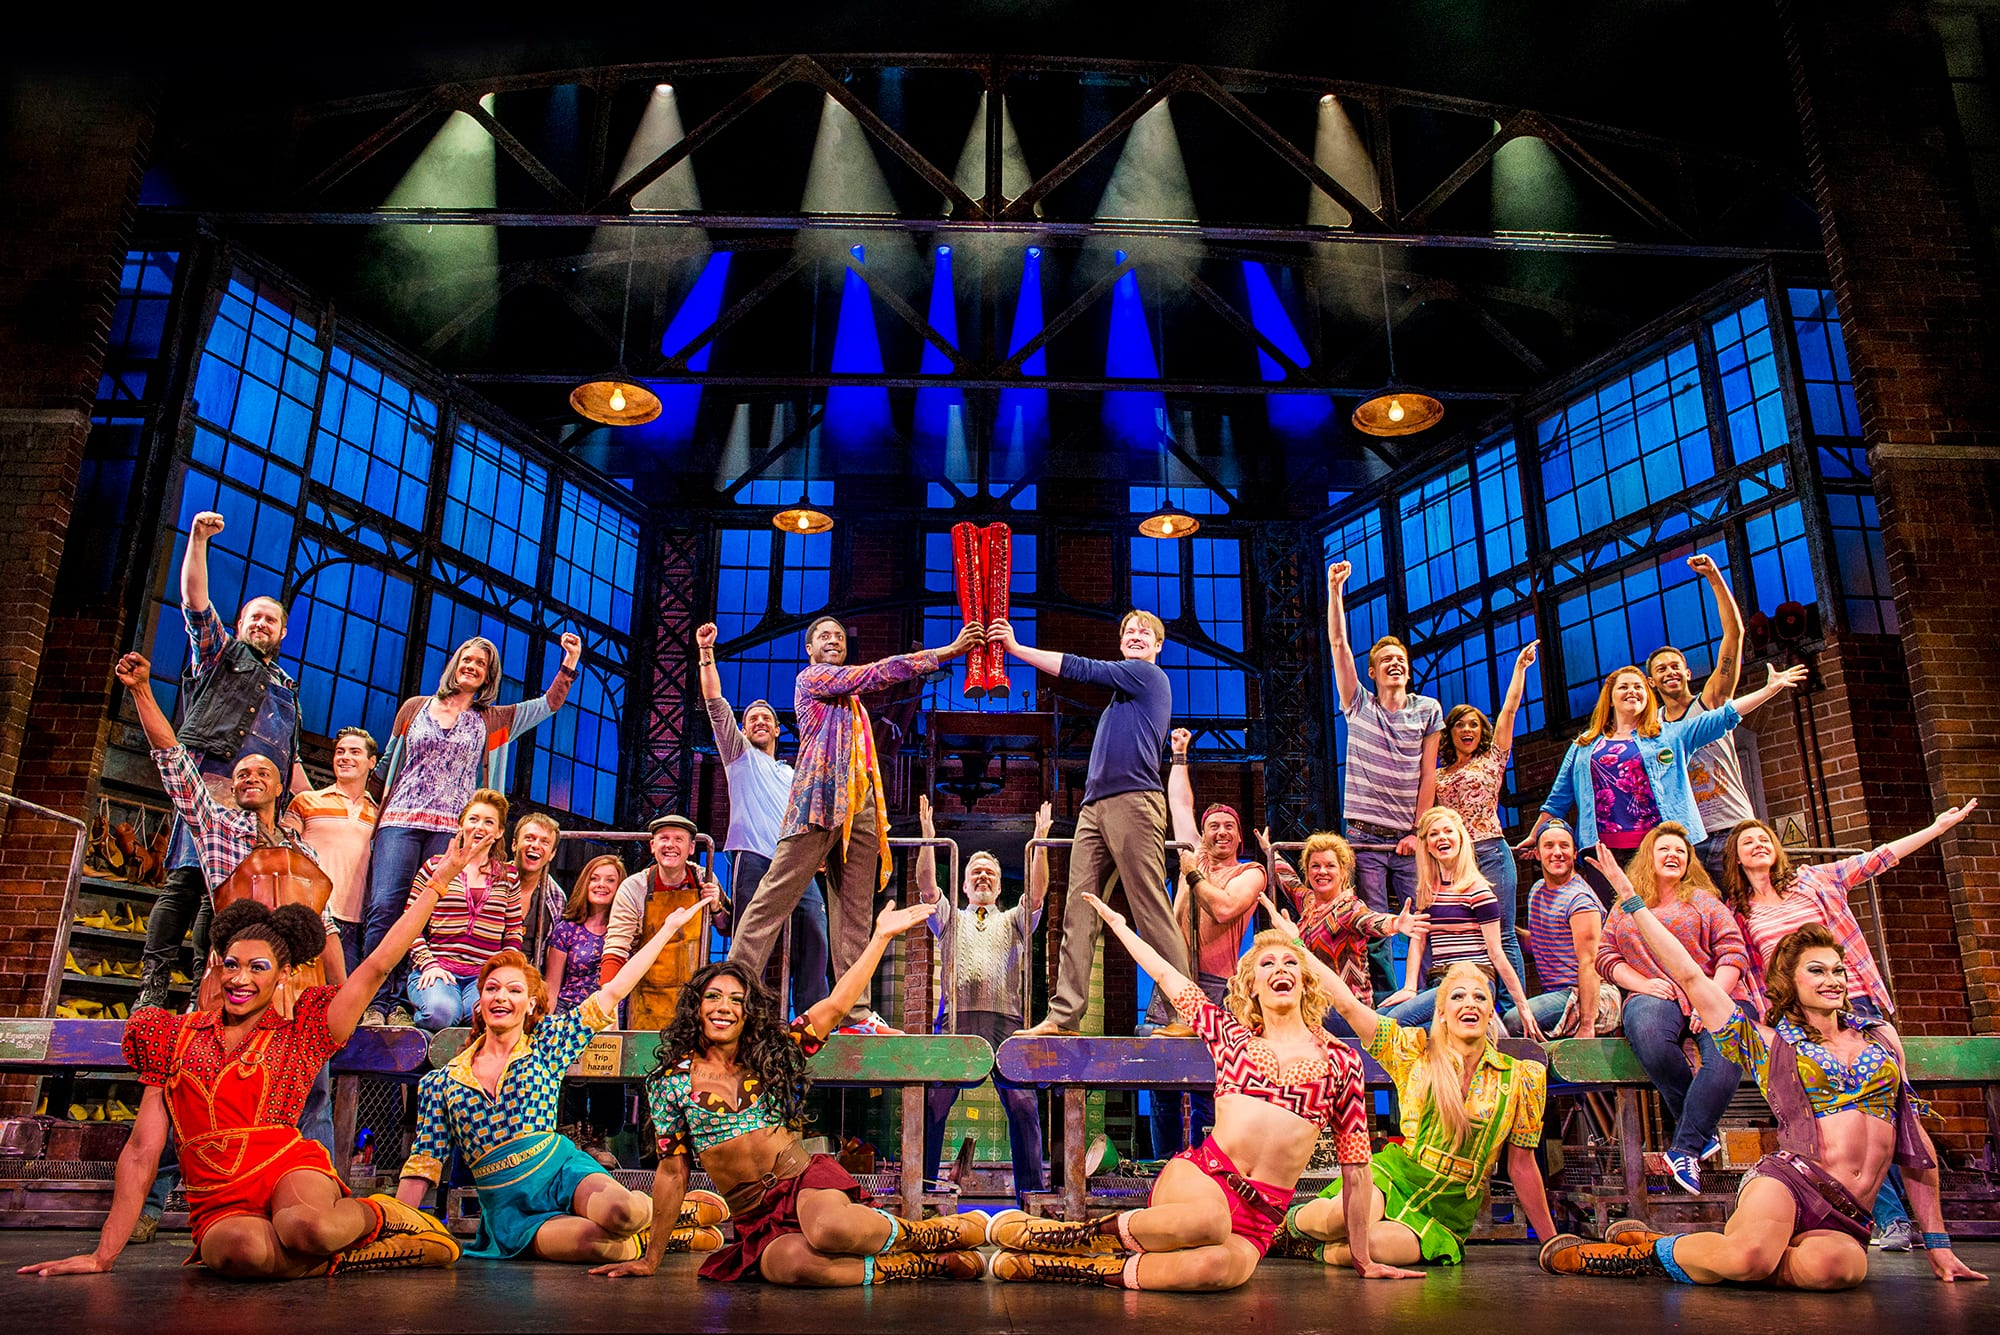 Image 1 of the Kinky Boots The Musical gallery